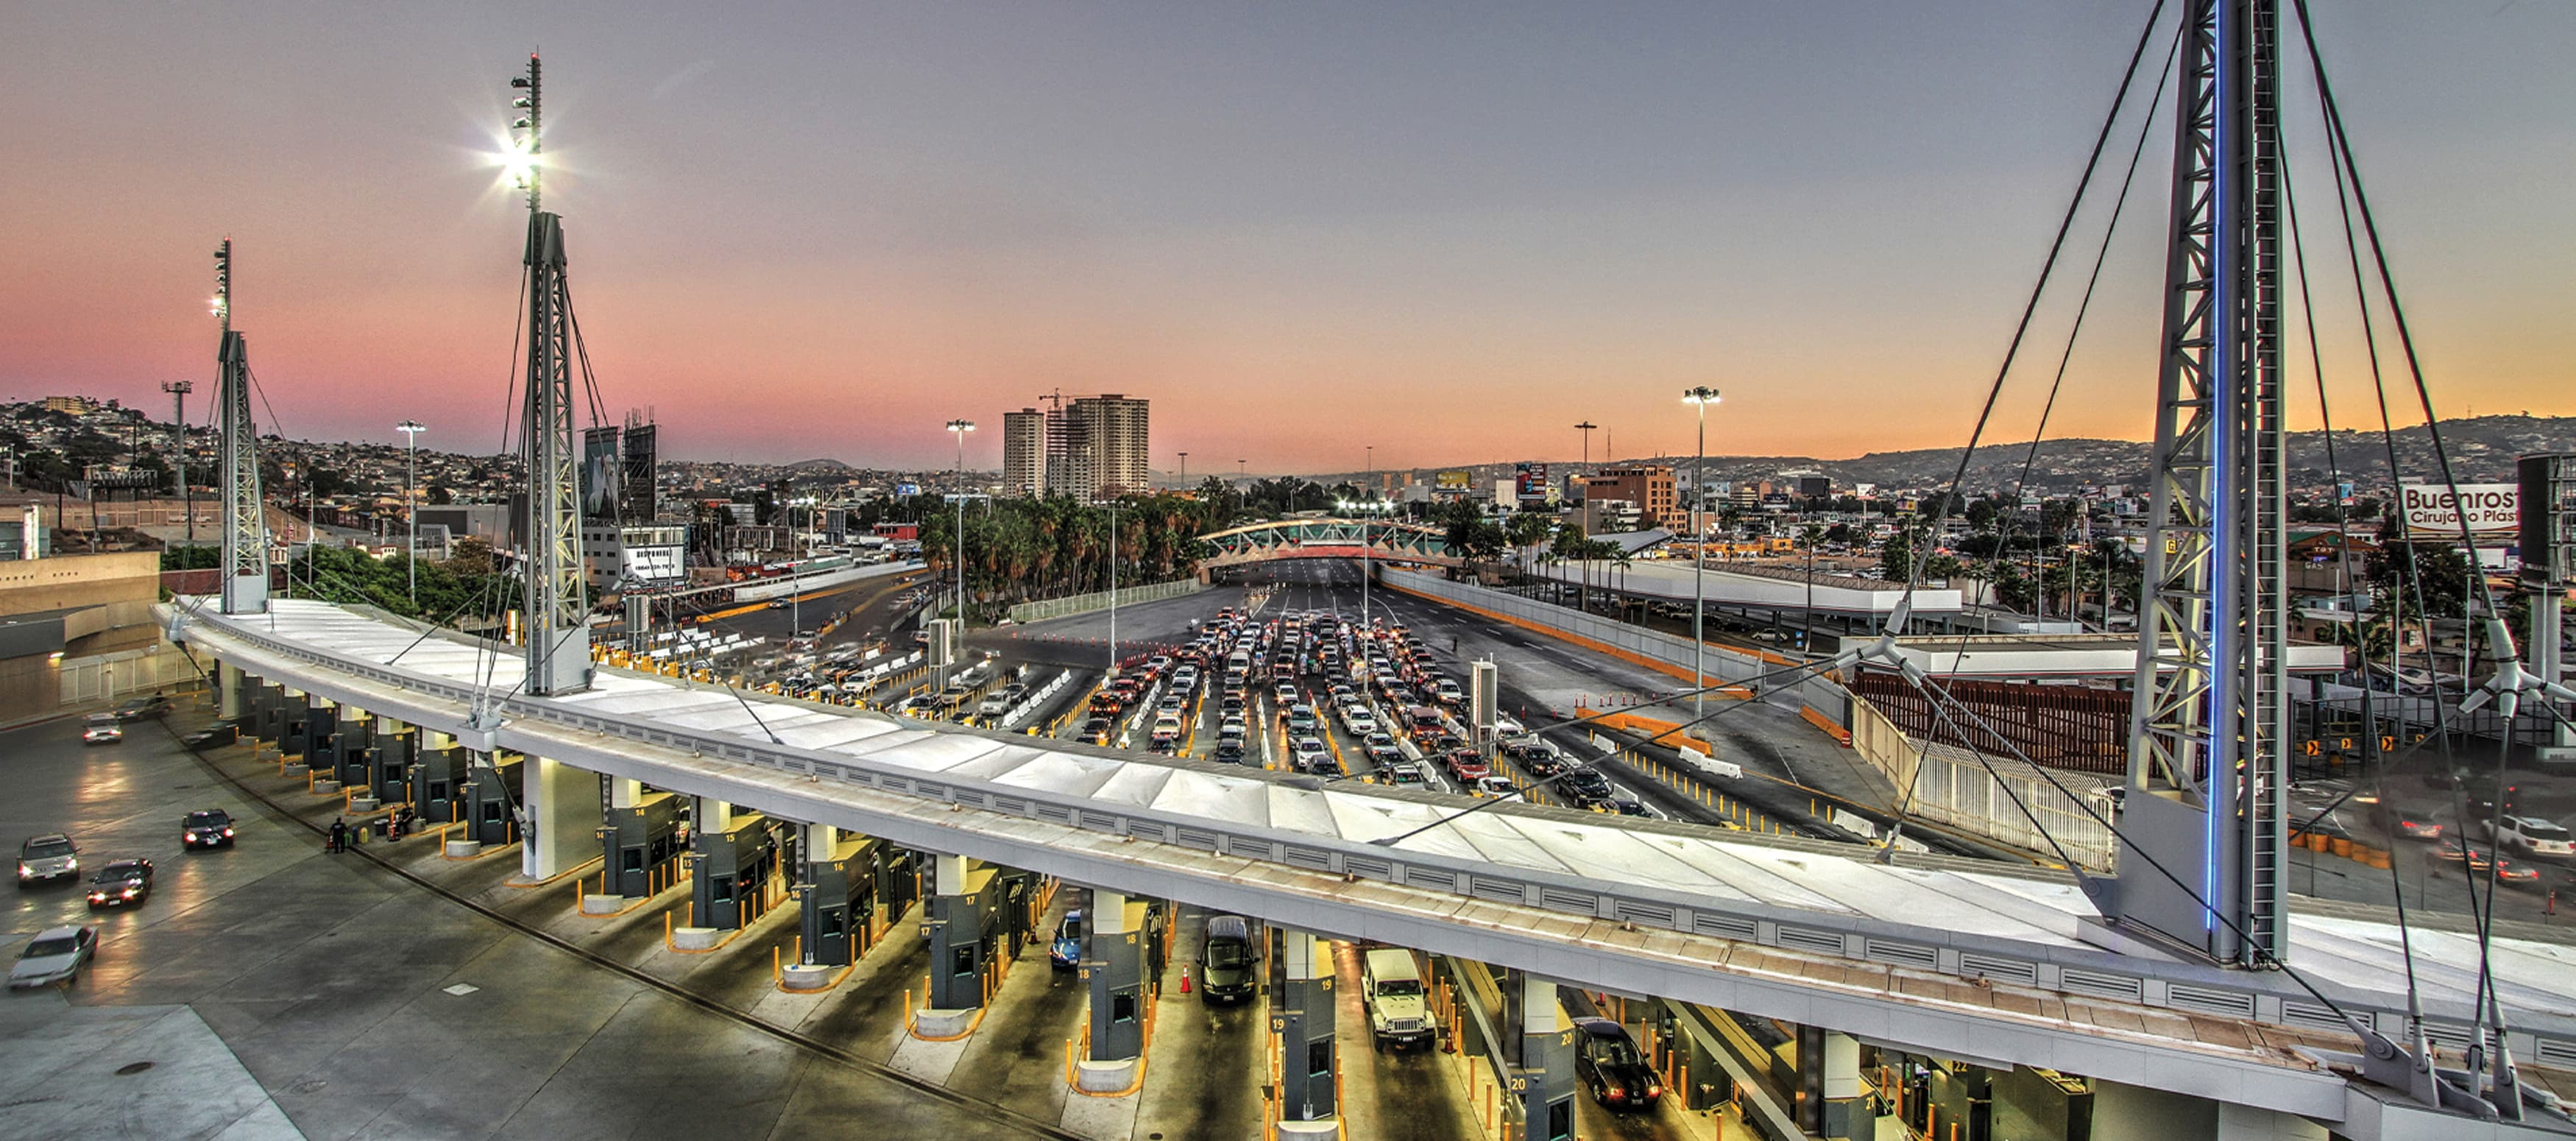 San Ysidro port of entry overhead view with cars lined up and sunset in the background